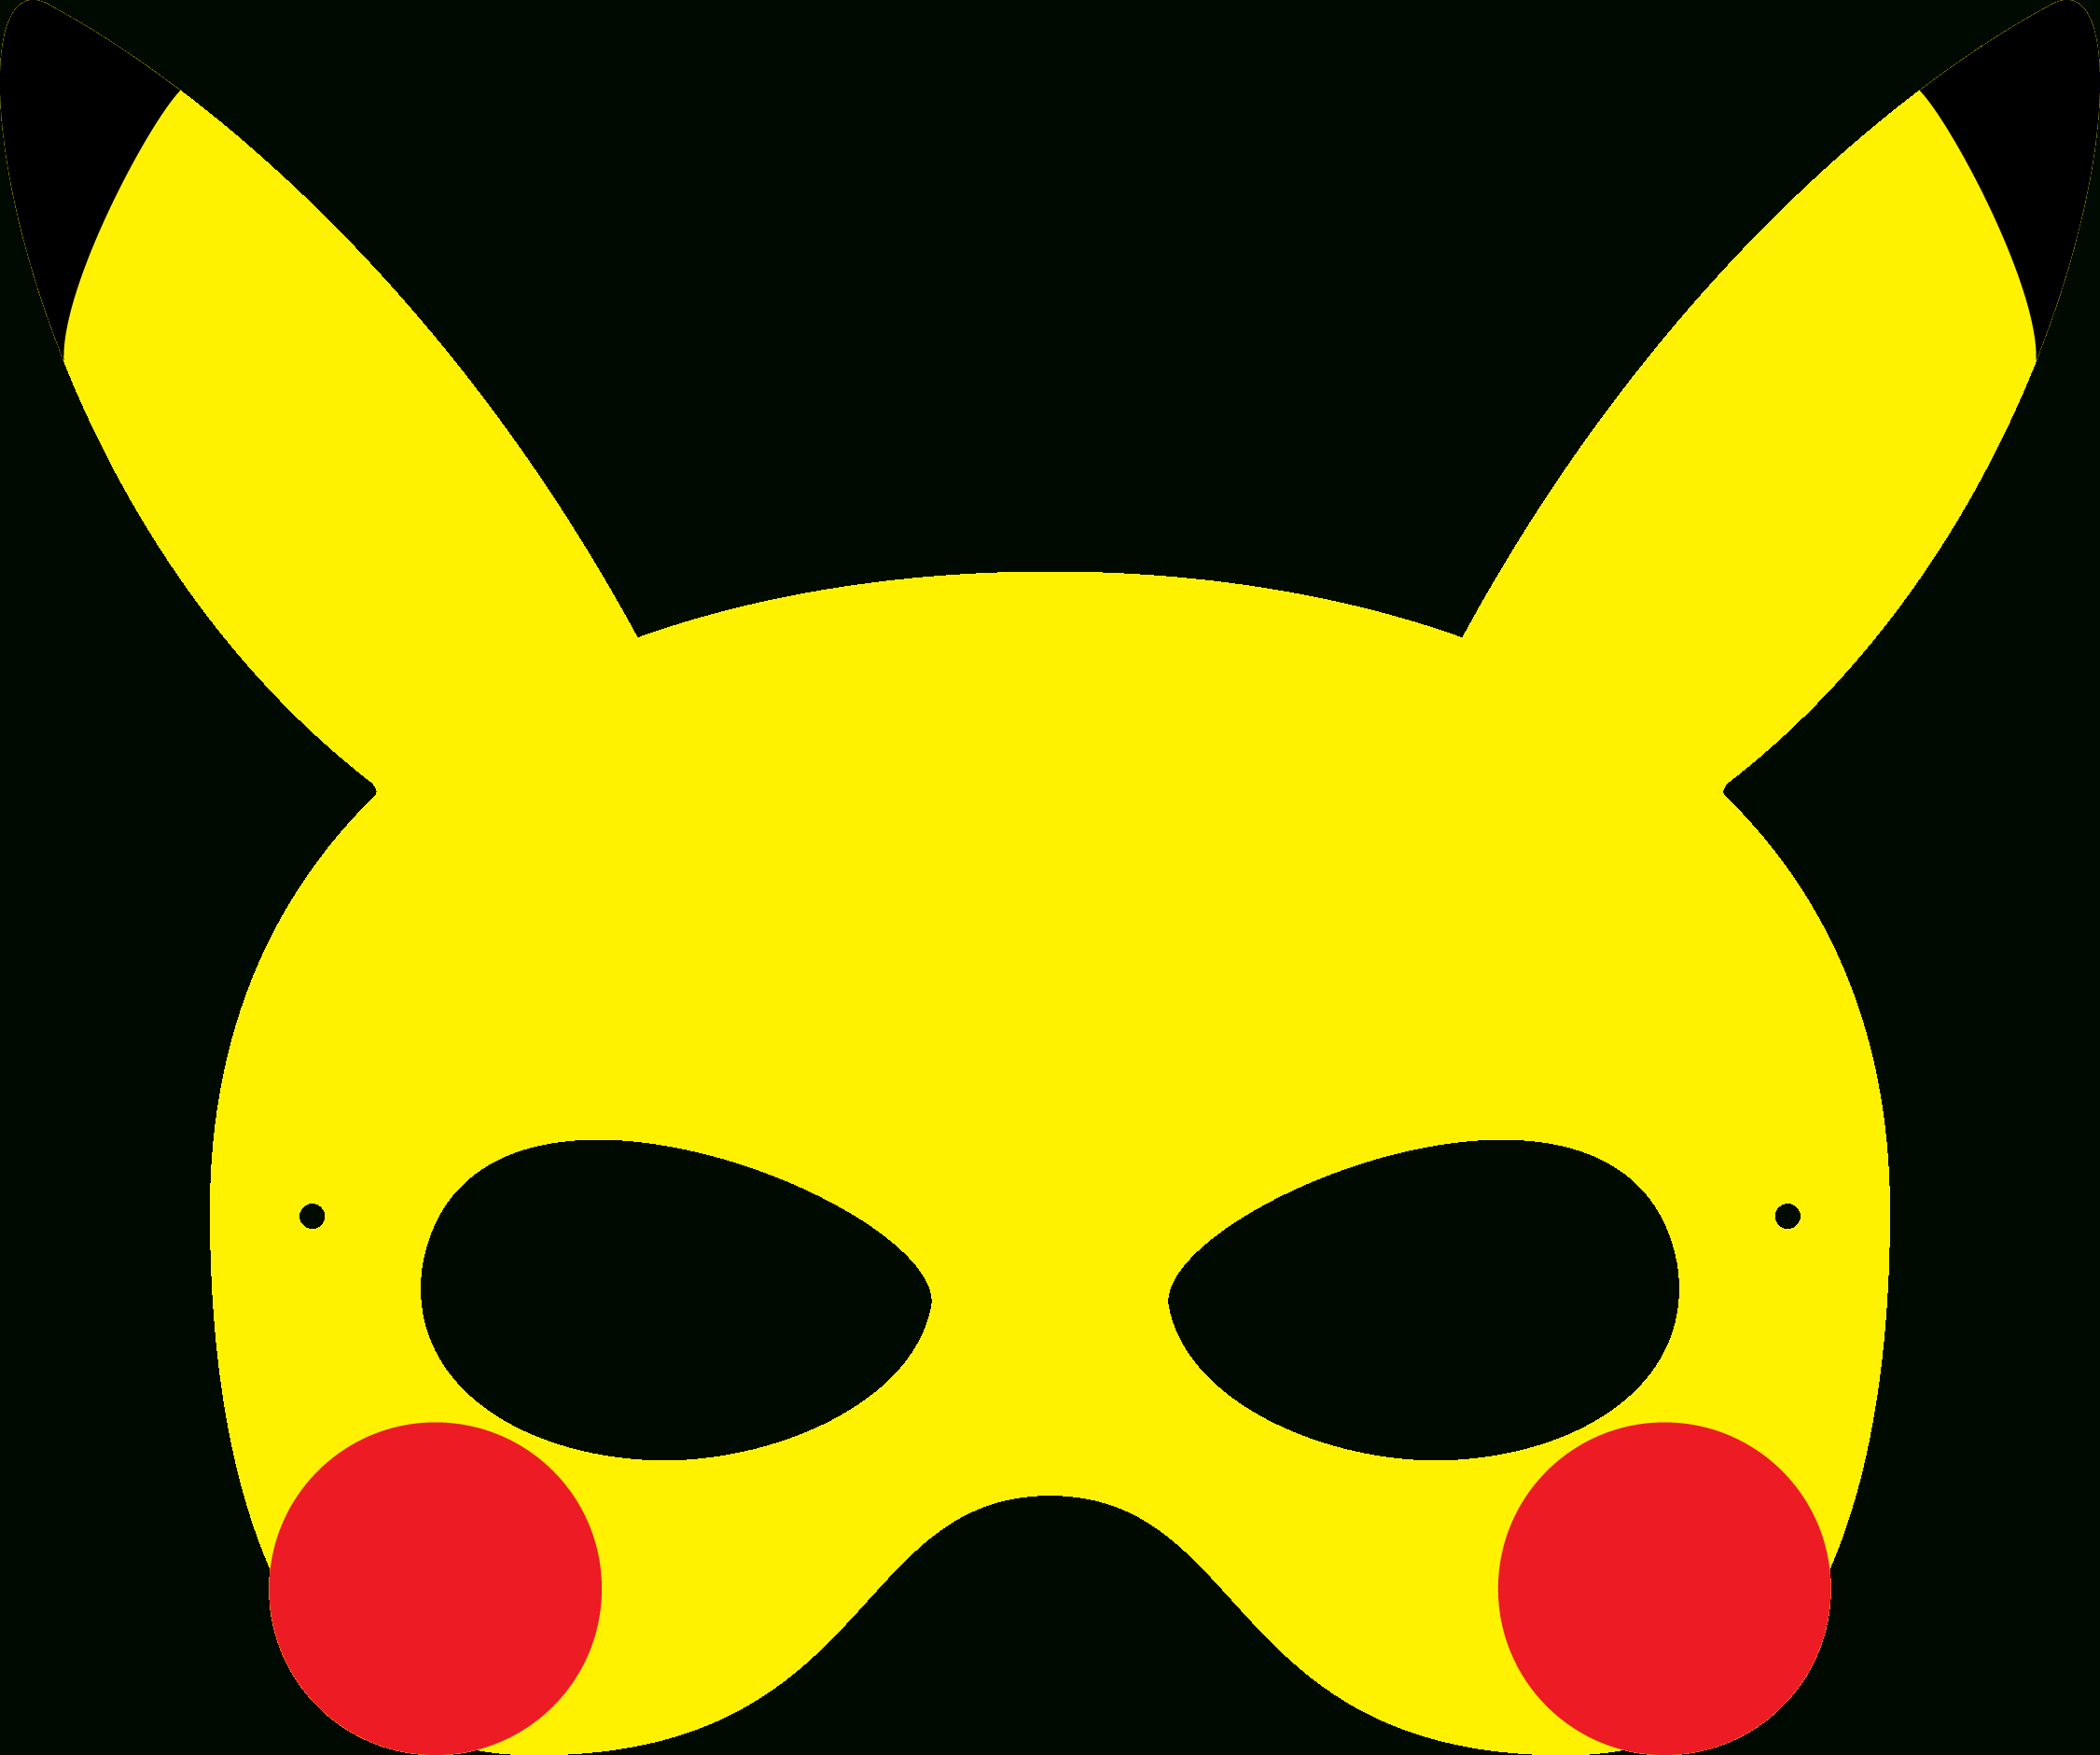 Pincrafty Annabelle On Pokemon Printables In 2019 | Pokemon - Free Printable Pokemon Masks